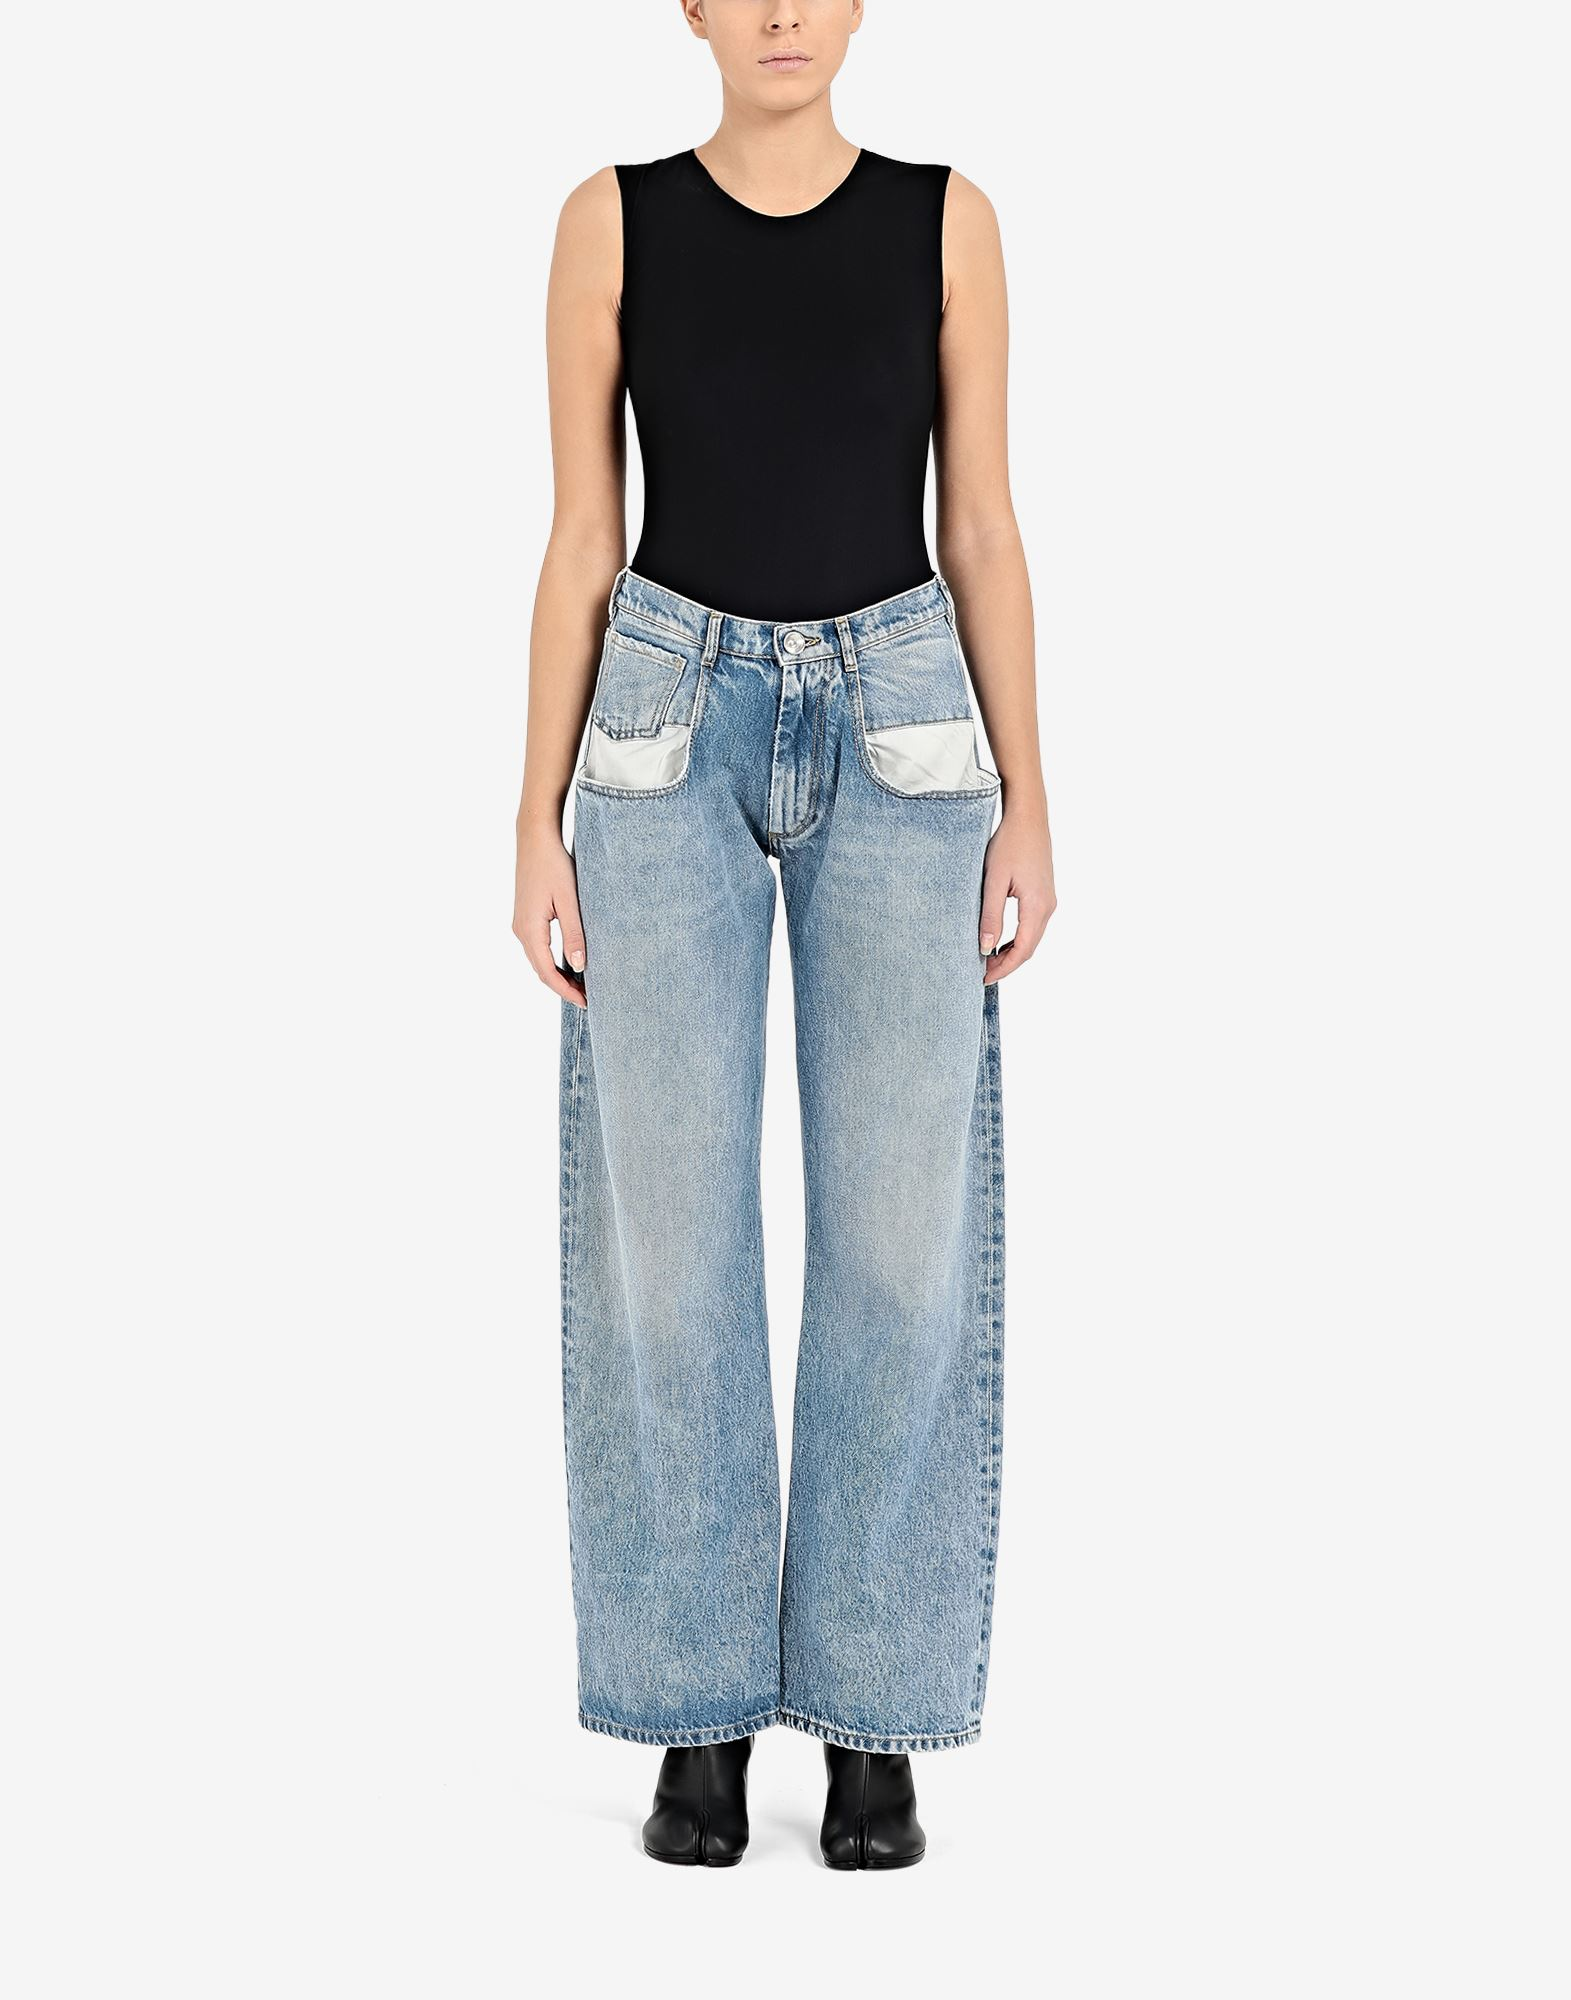 MAISON MARGIELA Straight jeans with contrasted pockets Jeans Woman r